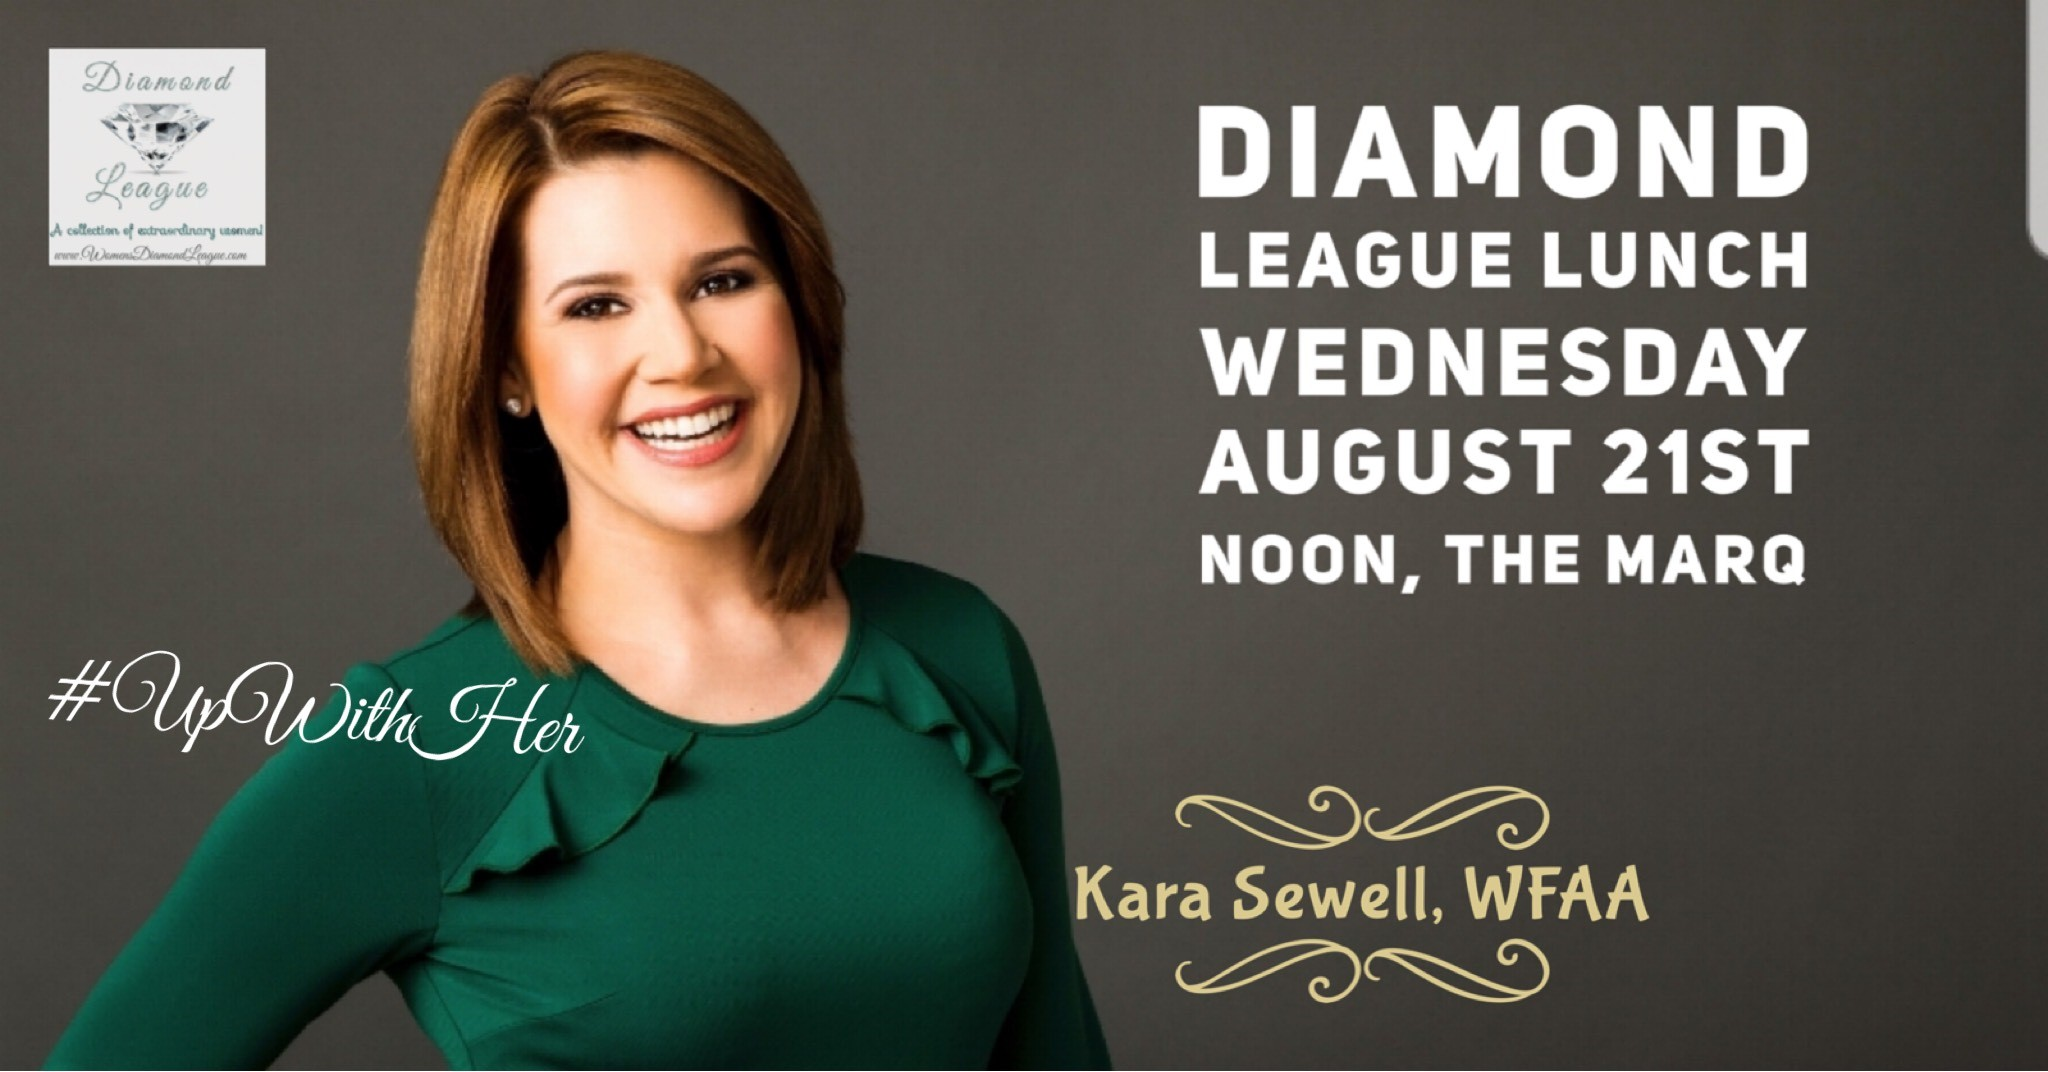 Next luncheon August 21st with Kara Sewell, WFAA – Women's